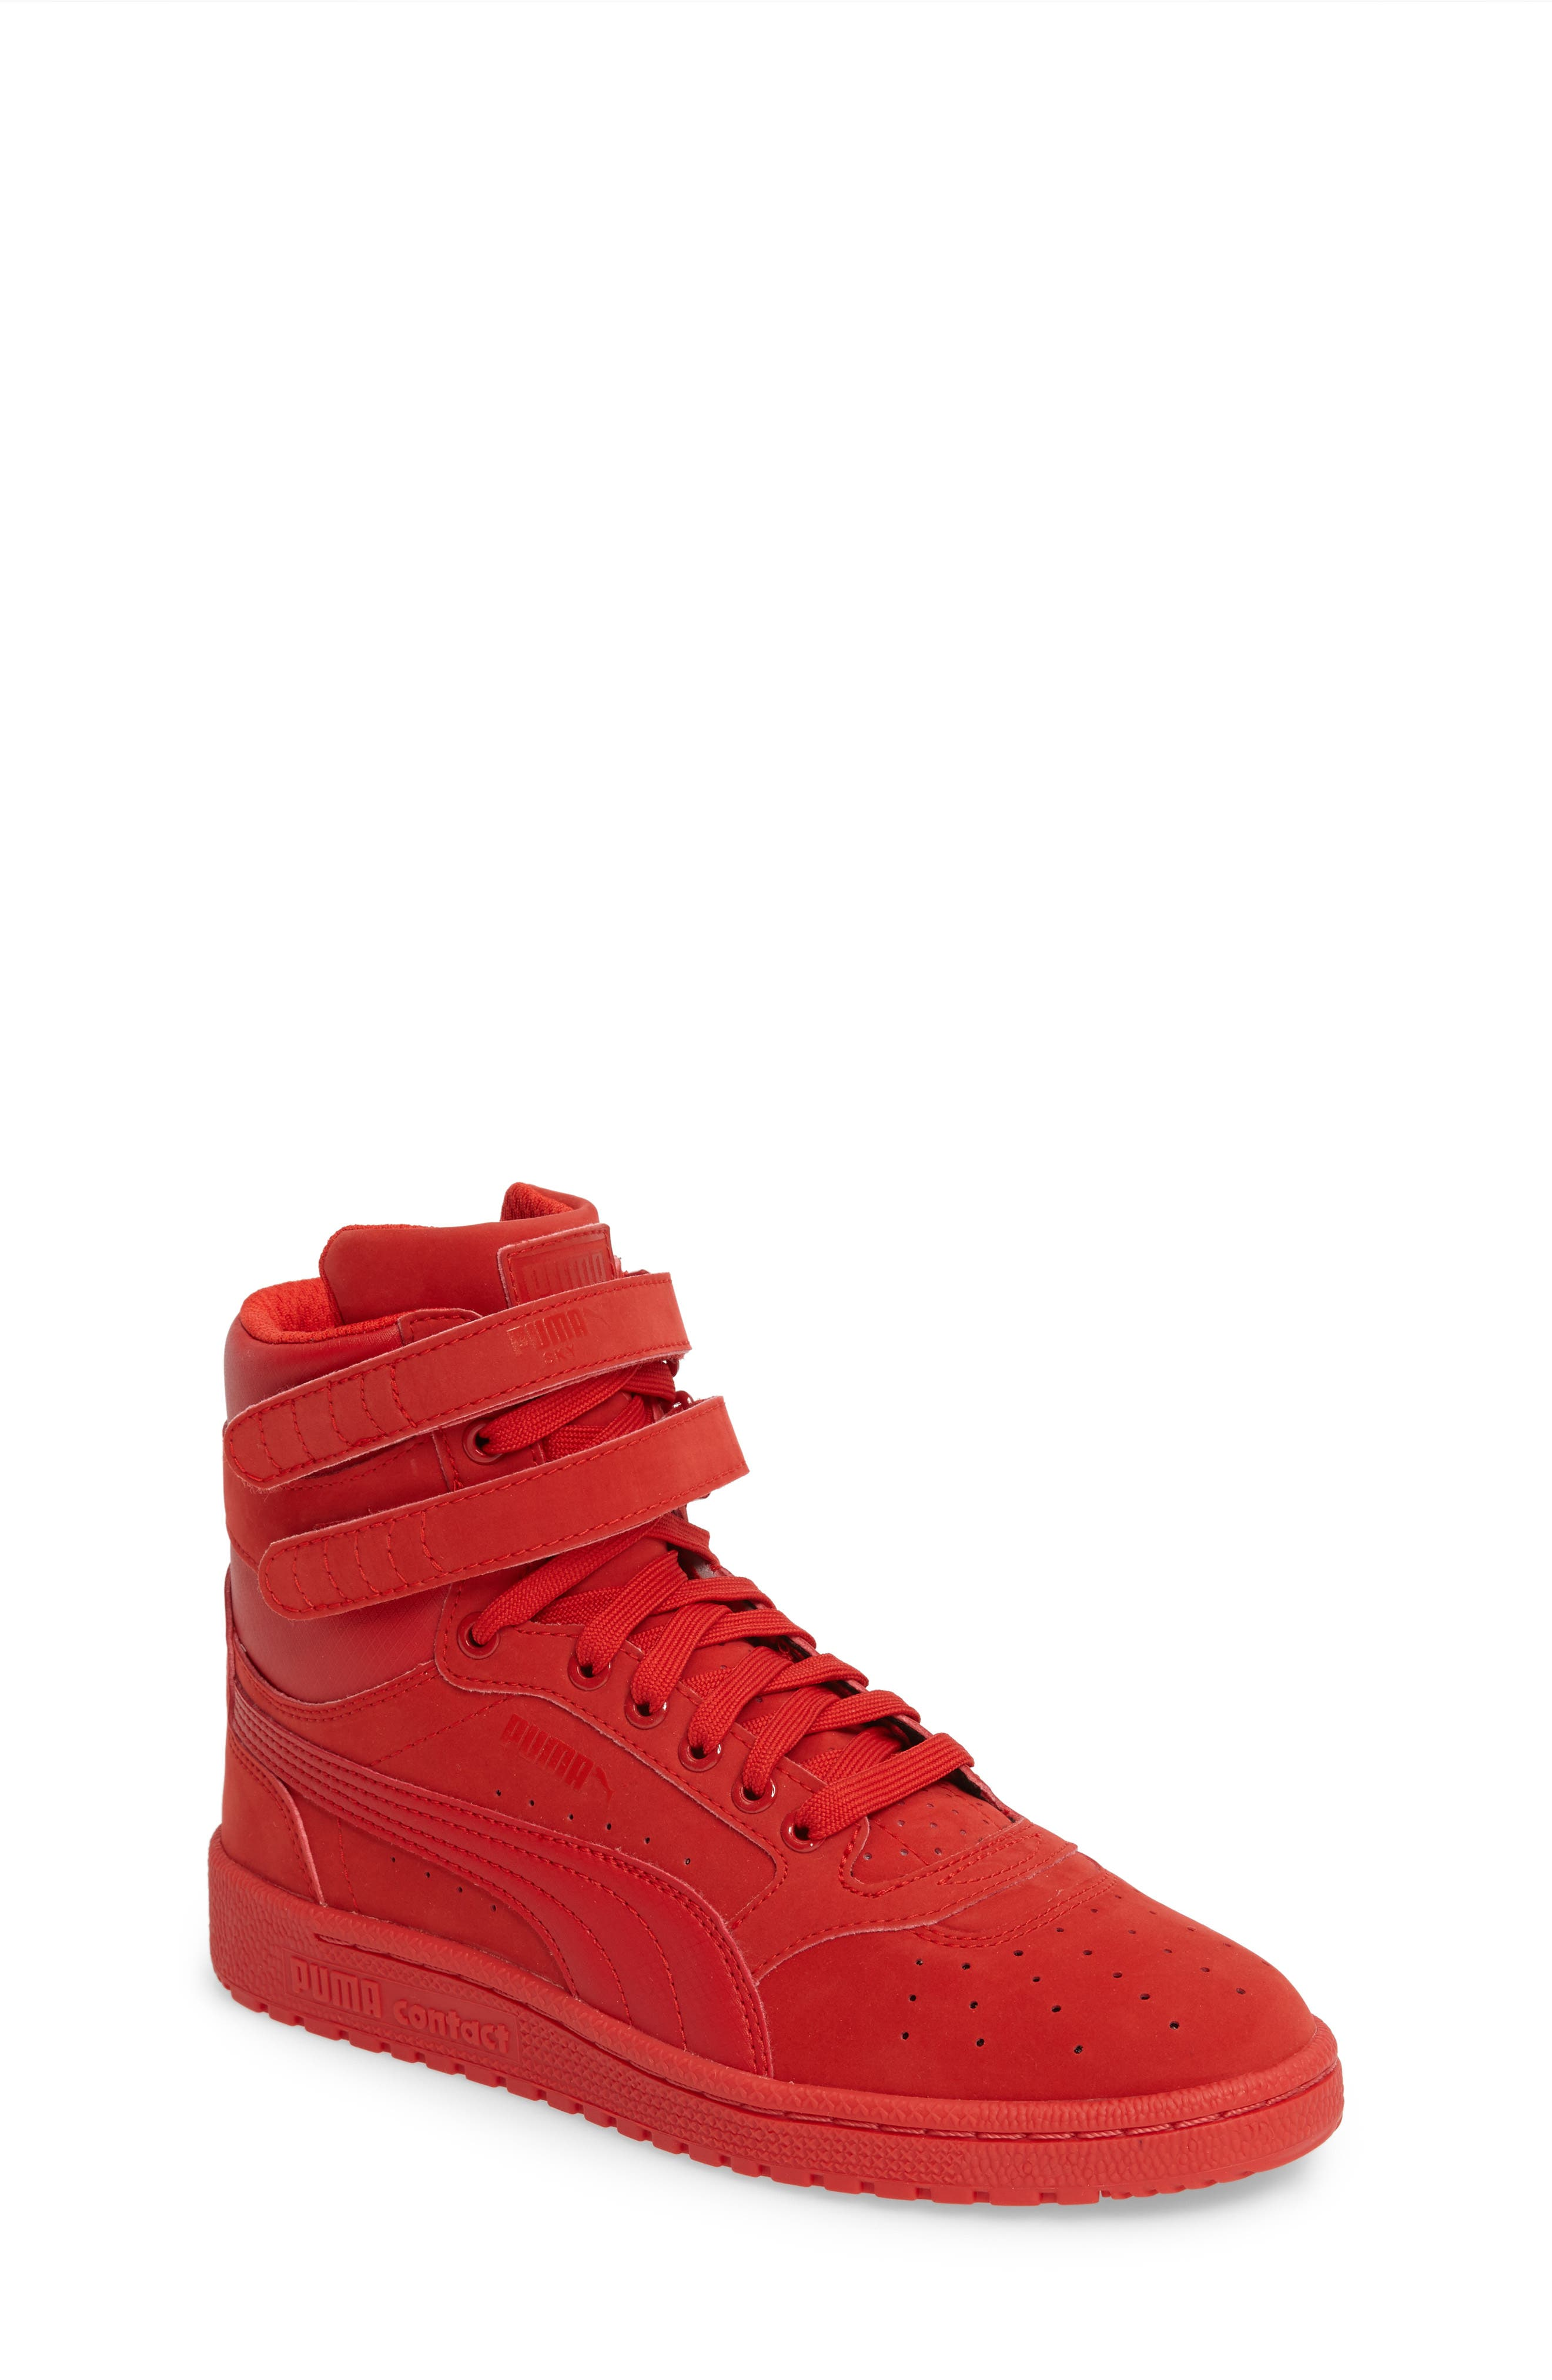 Alternate Image 1 Selected - PUMA Ski II High Top Sneaker (Big Kid)